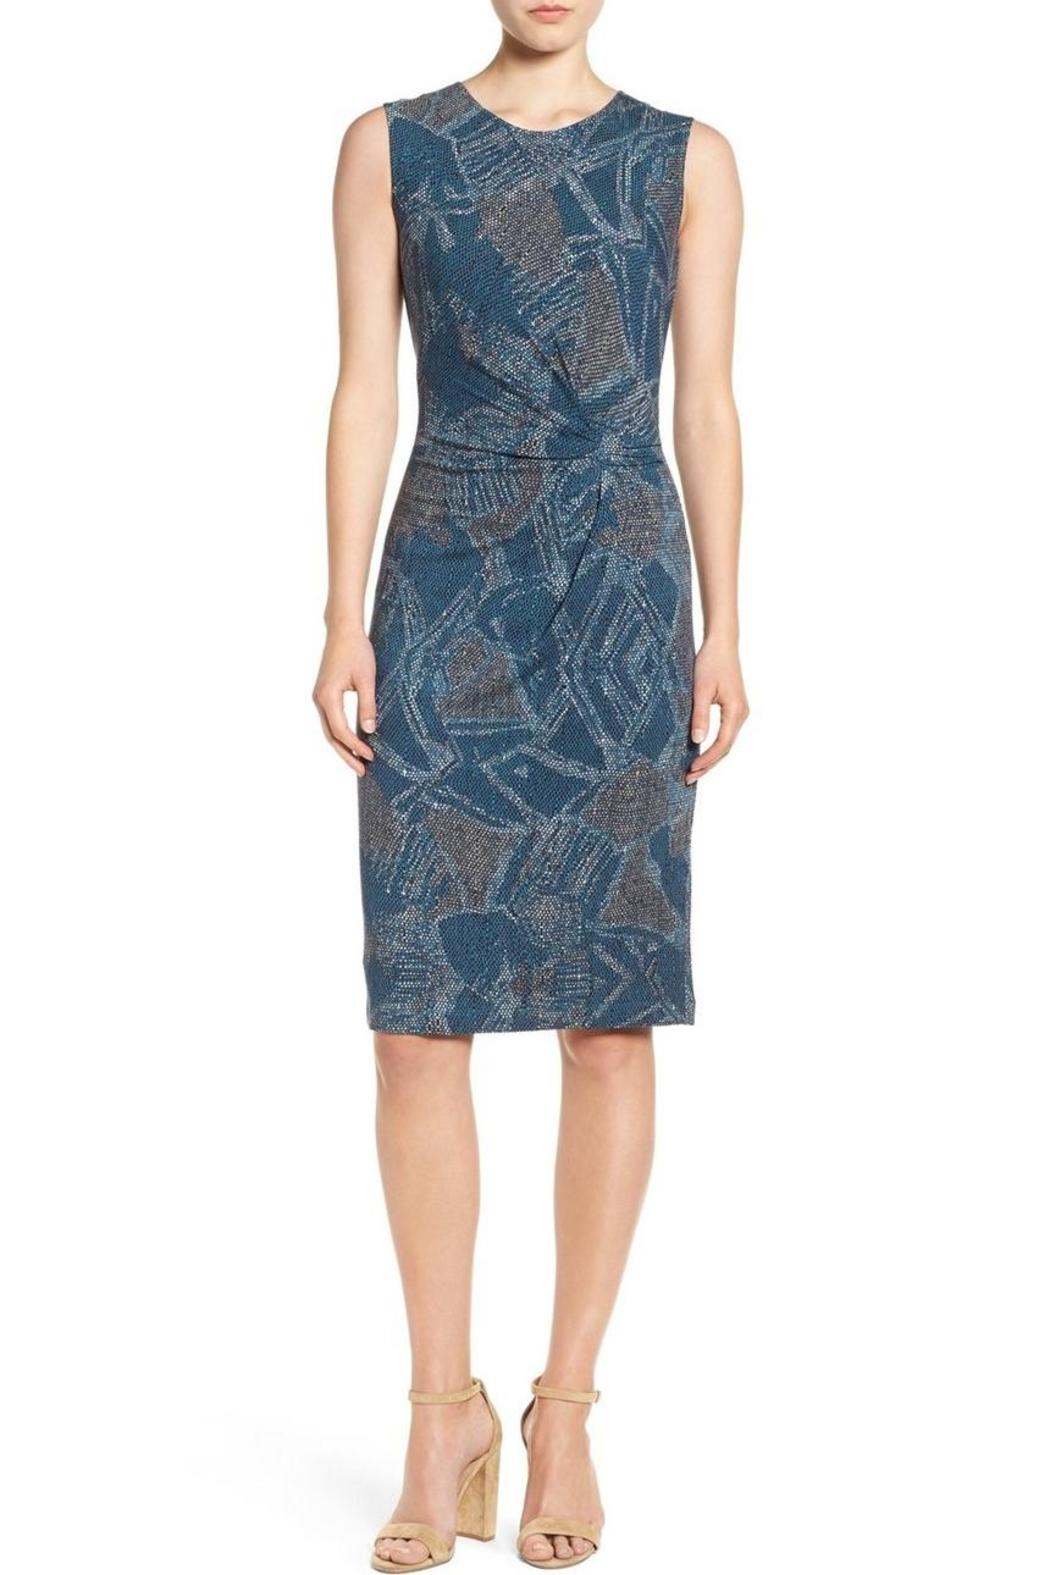 Nic + Zoe Blue Twist Dress - Main Image